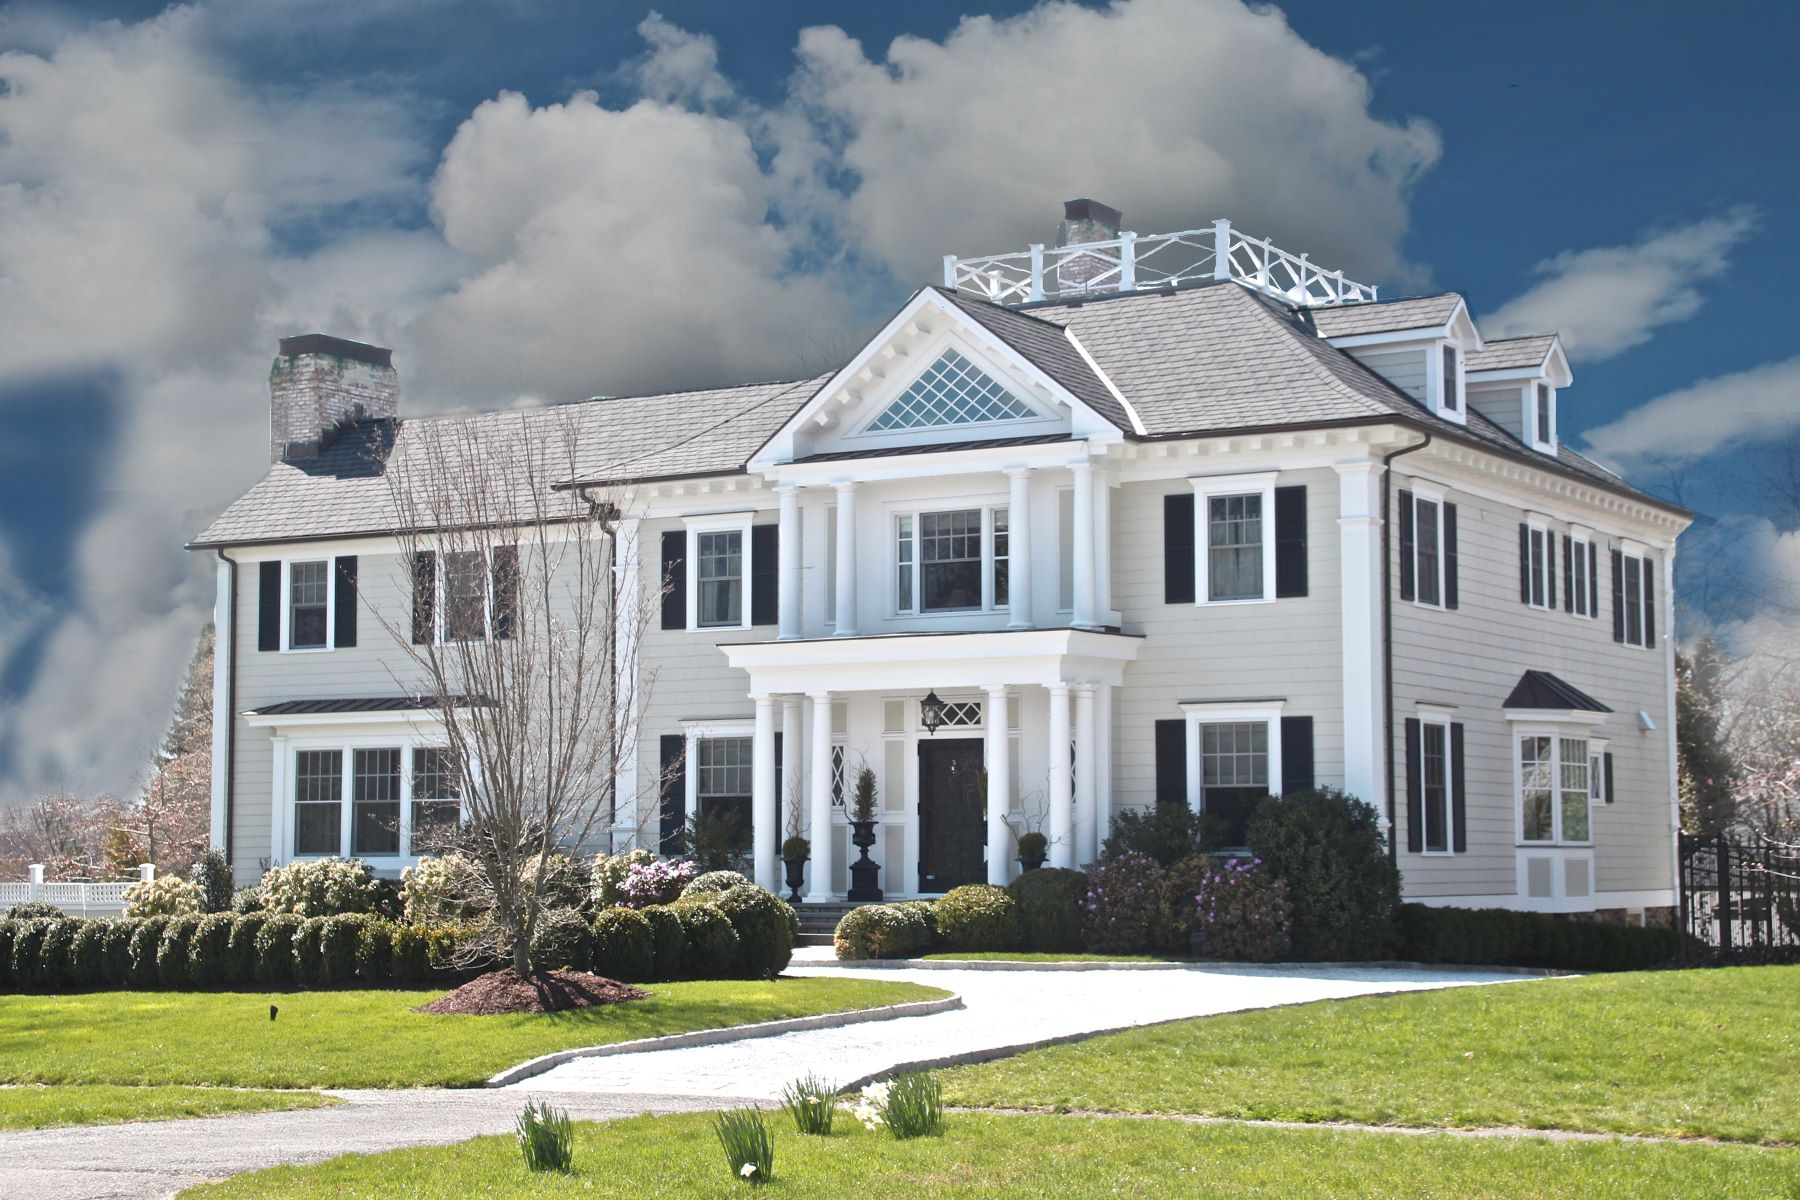 Single Family Home for Sale at Rowayton Masterpiece 41 Highland Avenue Norwalk, Connecticut 06853 United States